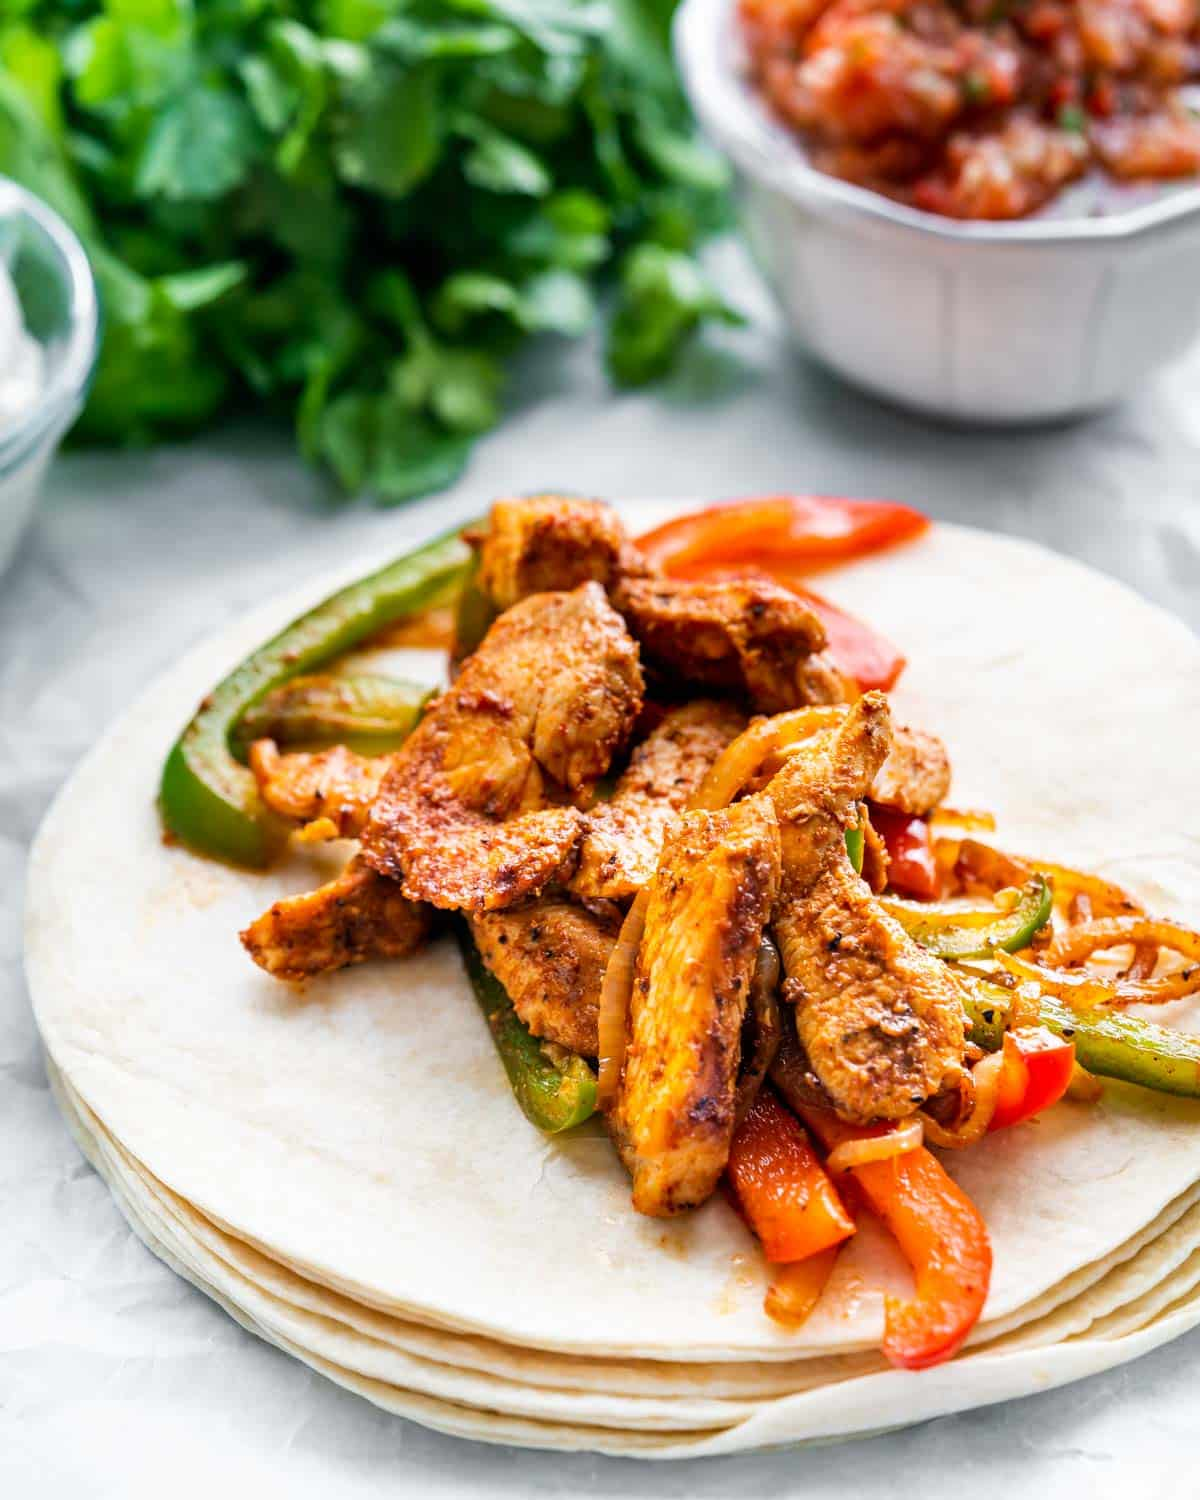 chicken fajitas over a stack of tortillas